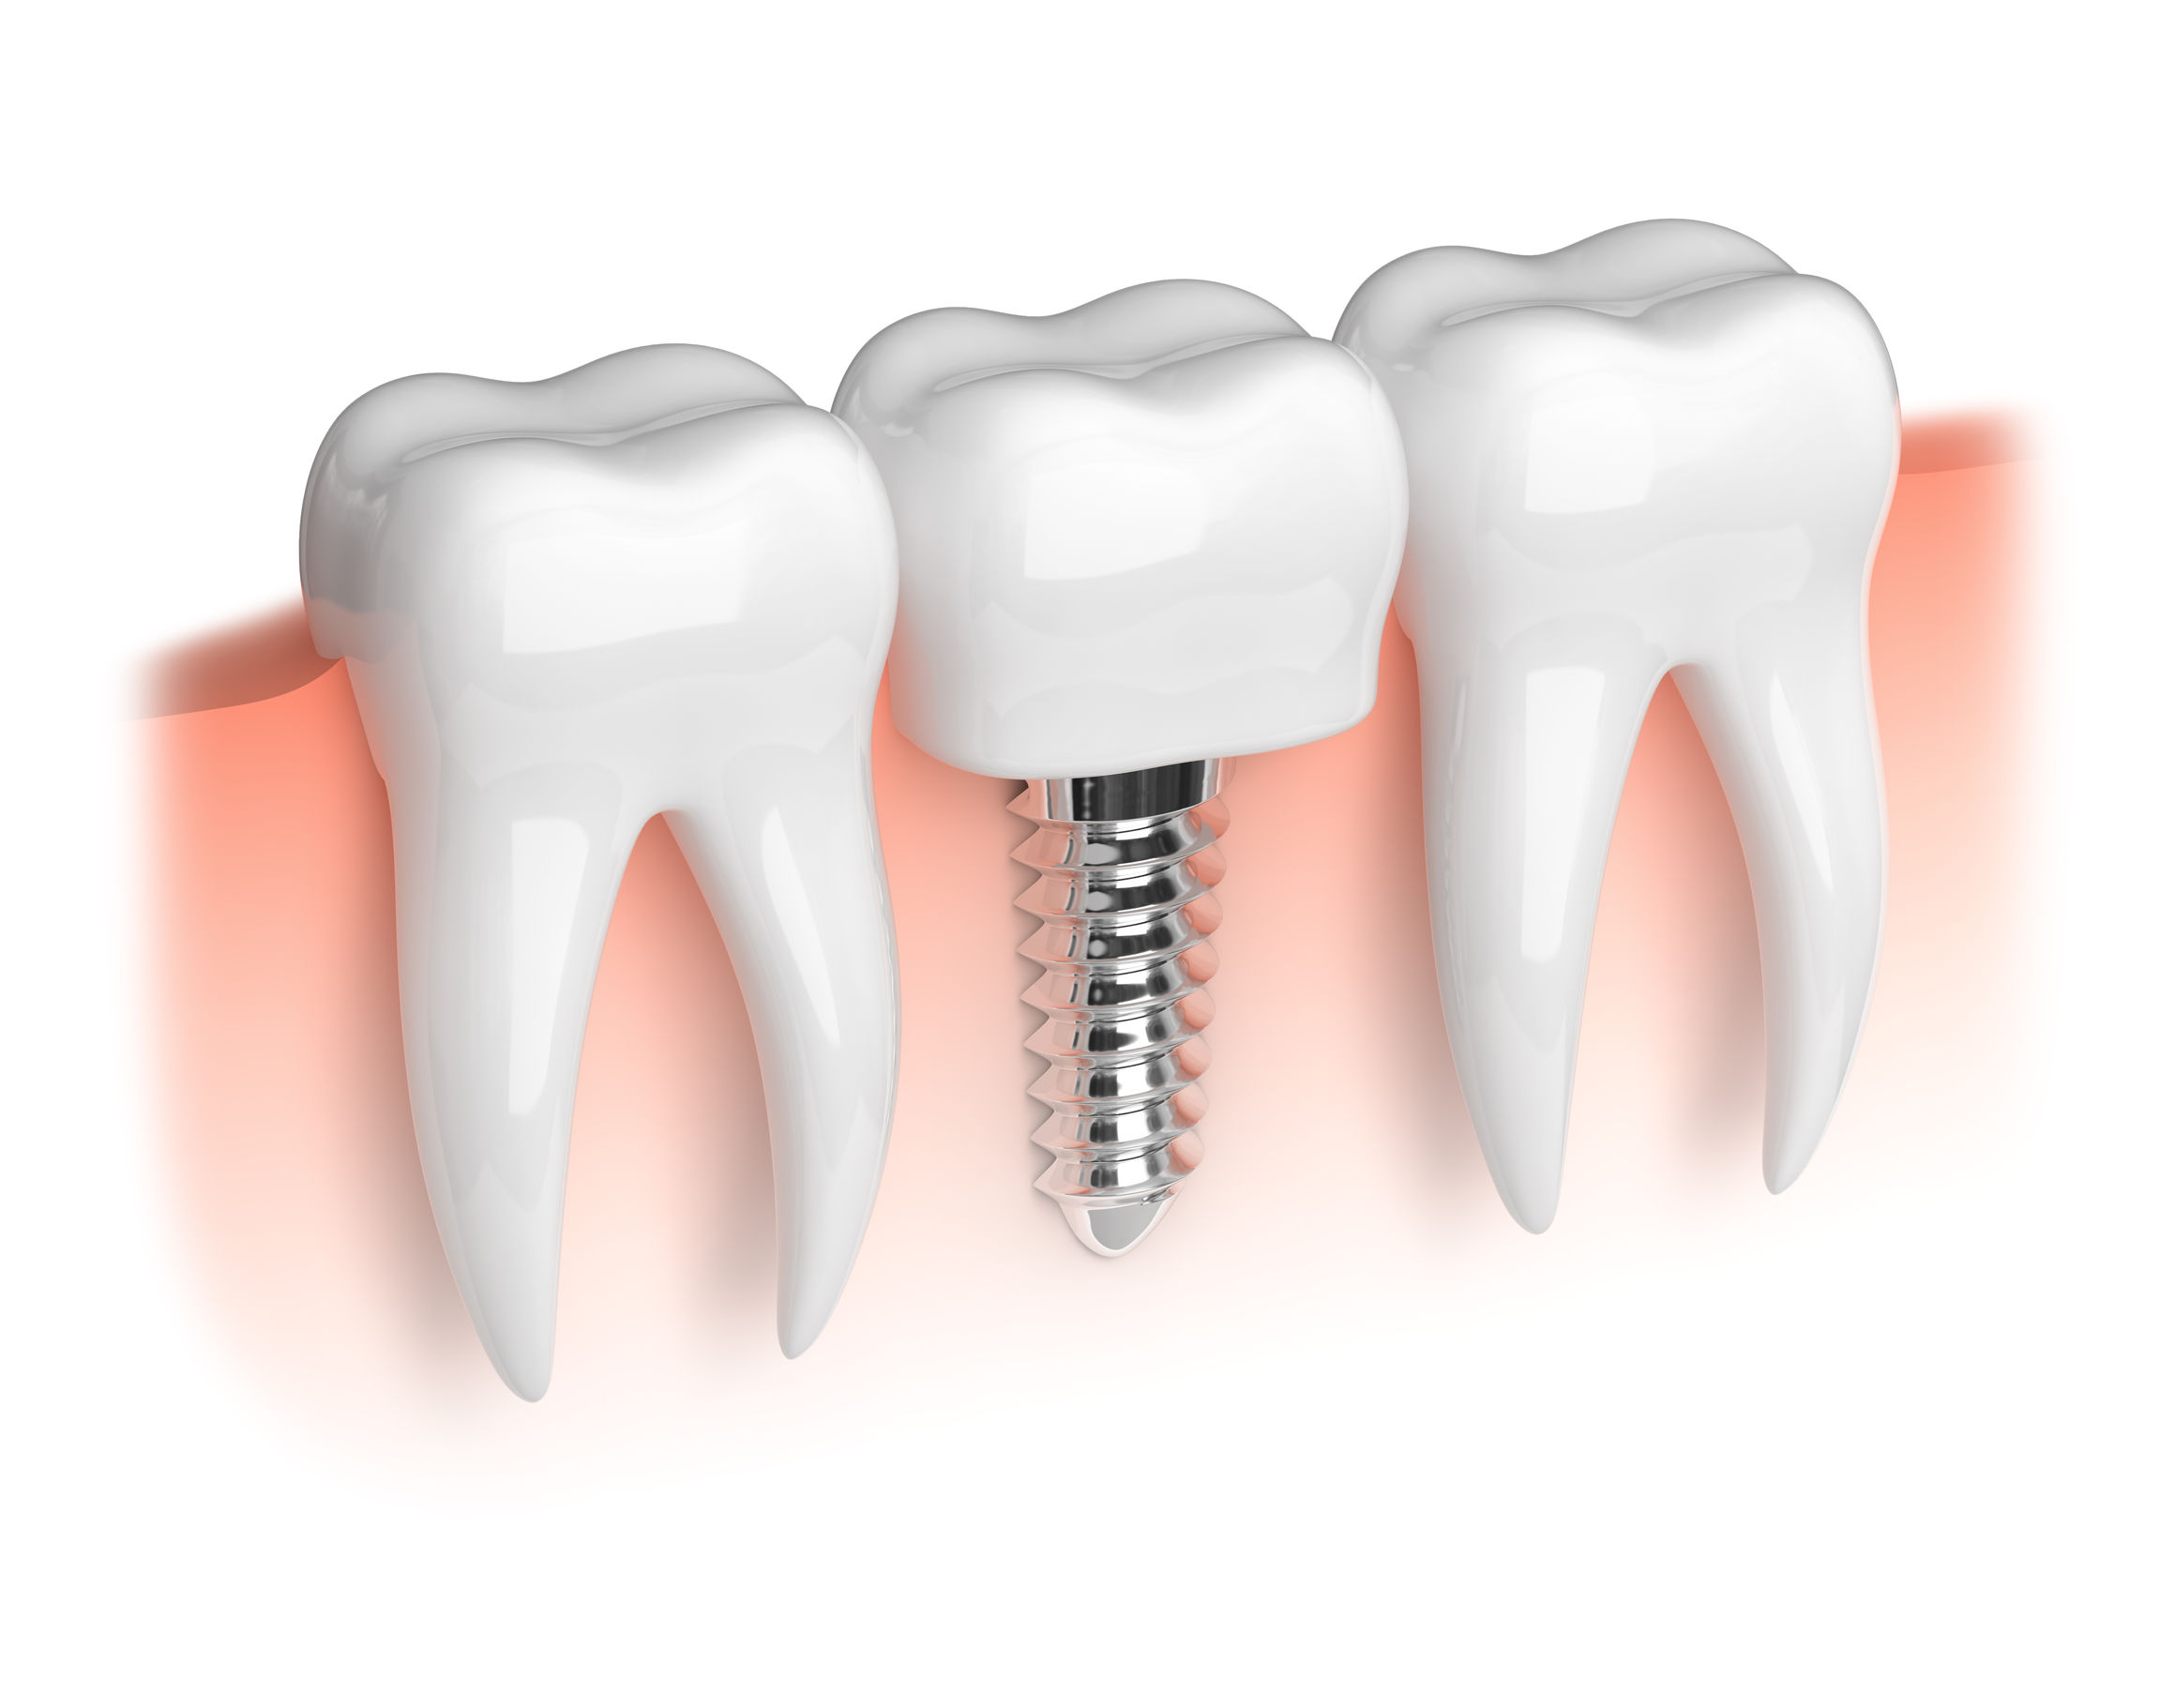 Where Can I Get North Brunswick Implants?